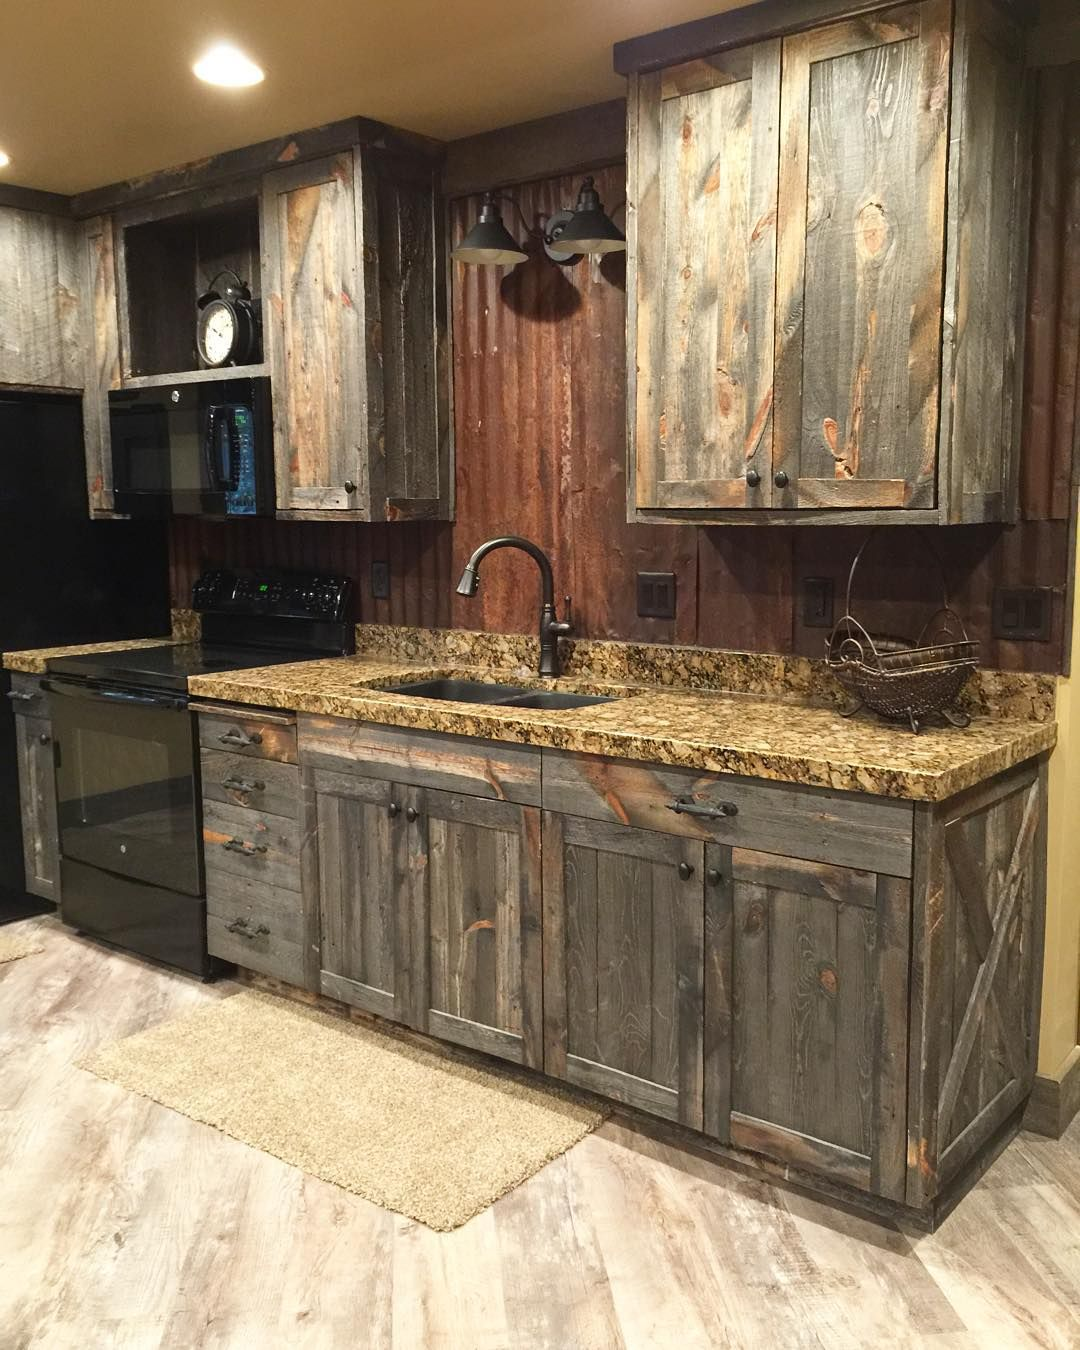 Rustic Kitchen Design Ideas Part - 36: A Little Barnwood Kitchen Cabinets And Corrugated Steel Backsplash. Love  How Rustic And Homey It